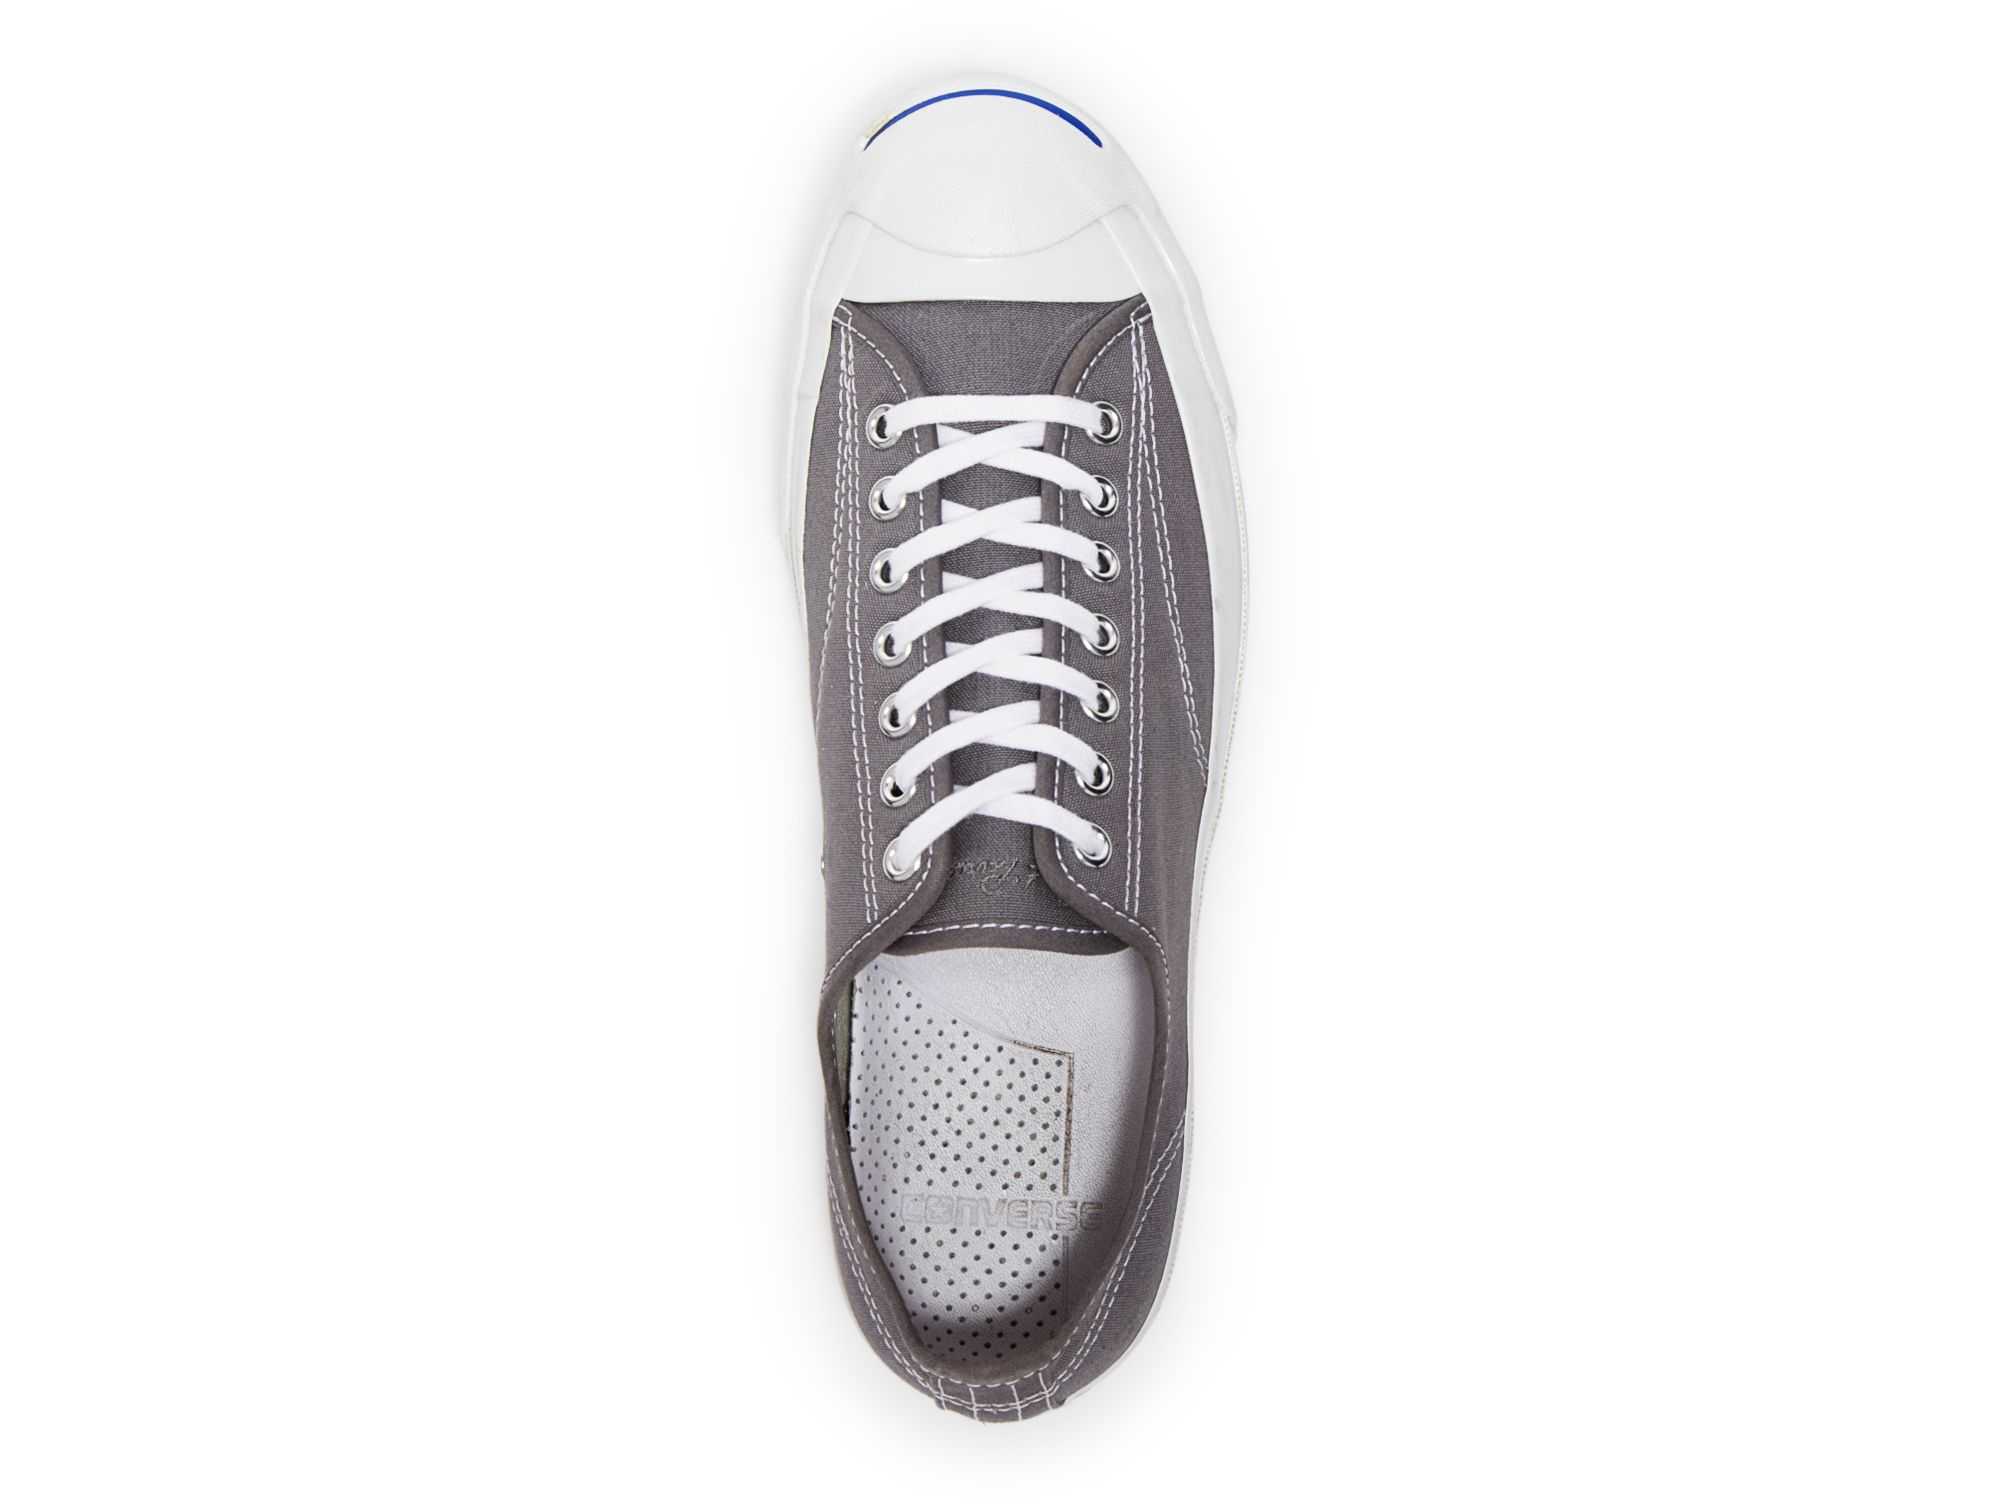 7f97cb7f45c3 Lyst - Converse Jack Purcell Signature Canvas Sneakers in Gray for Men